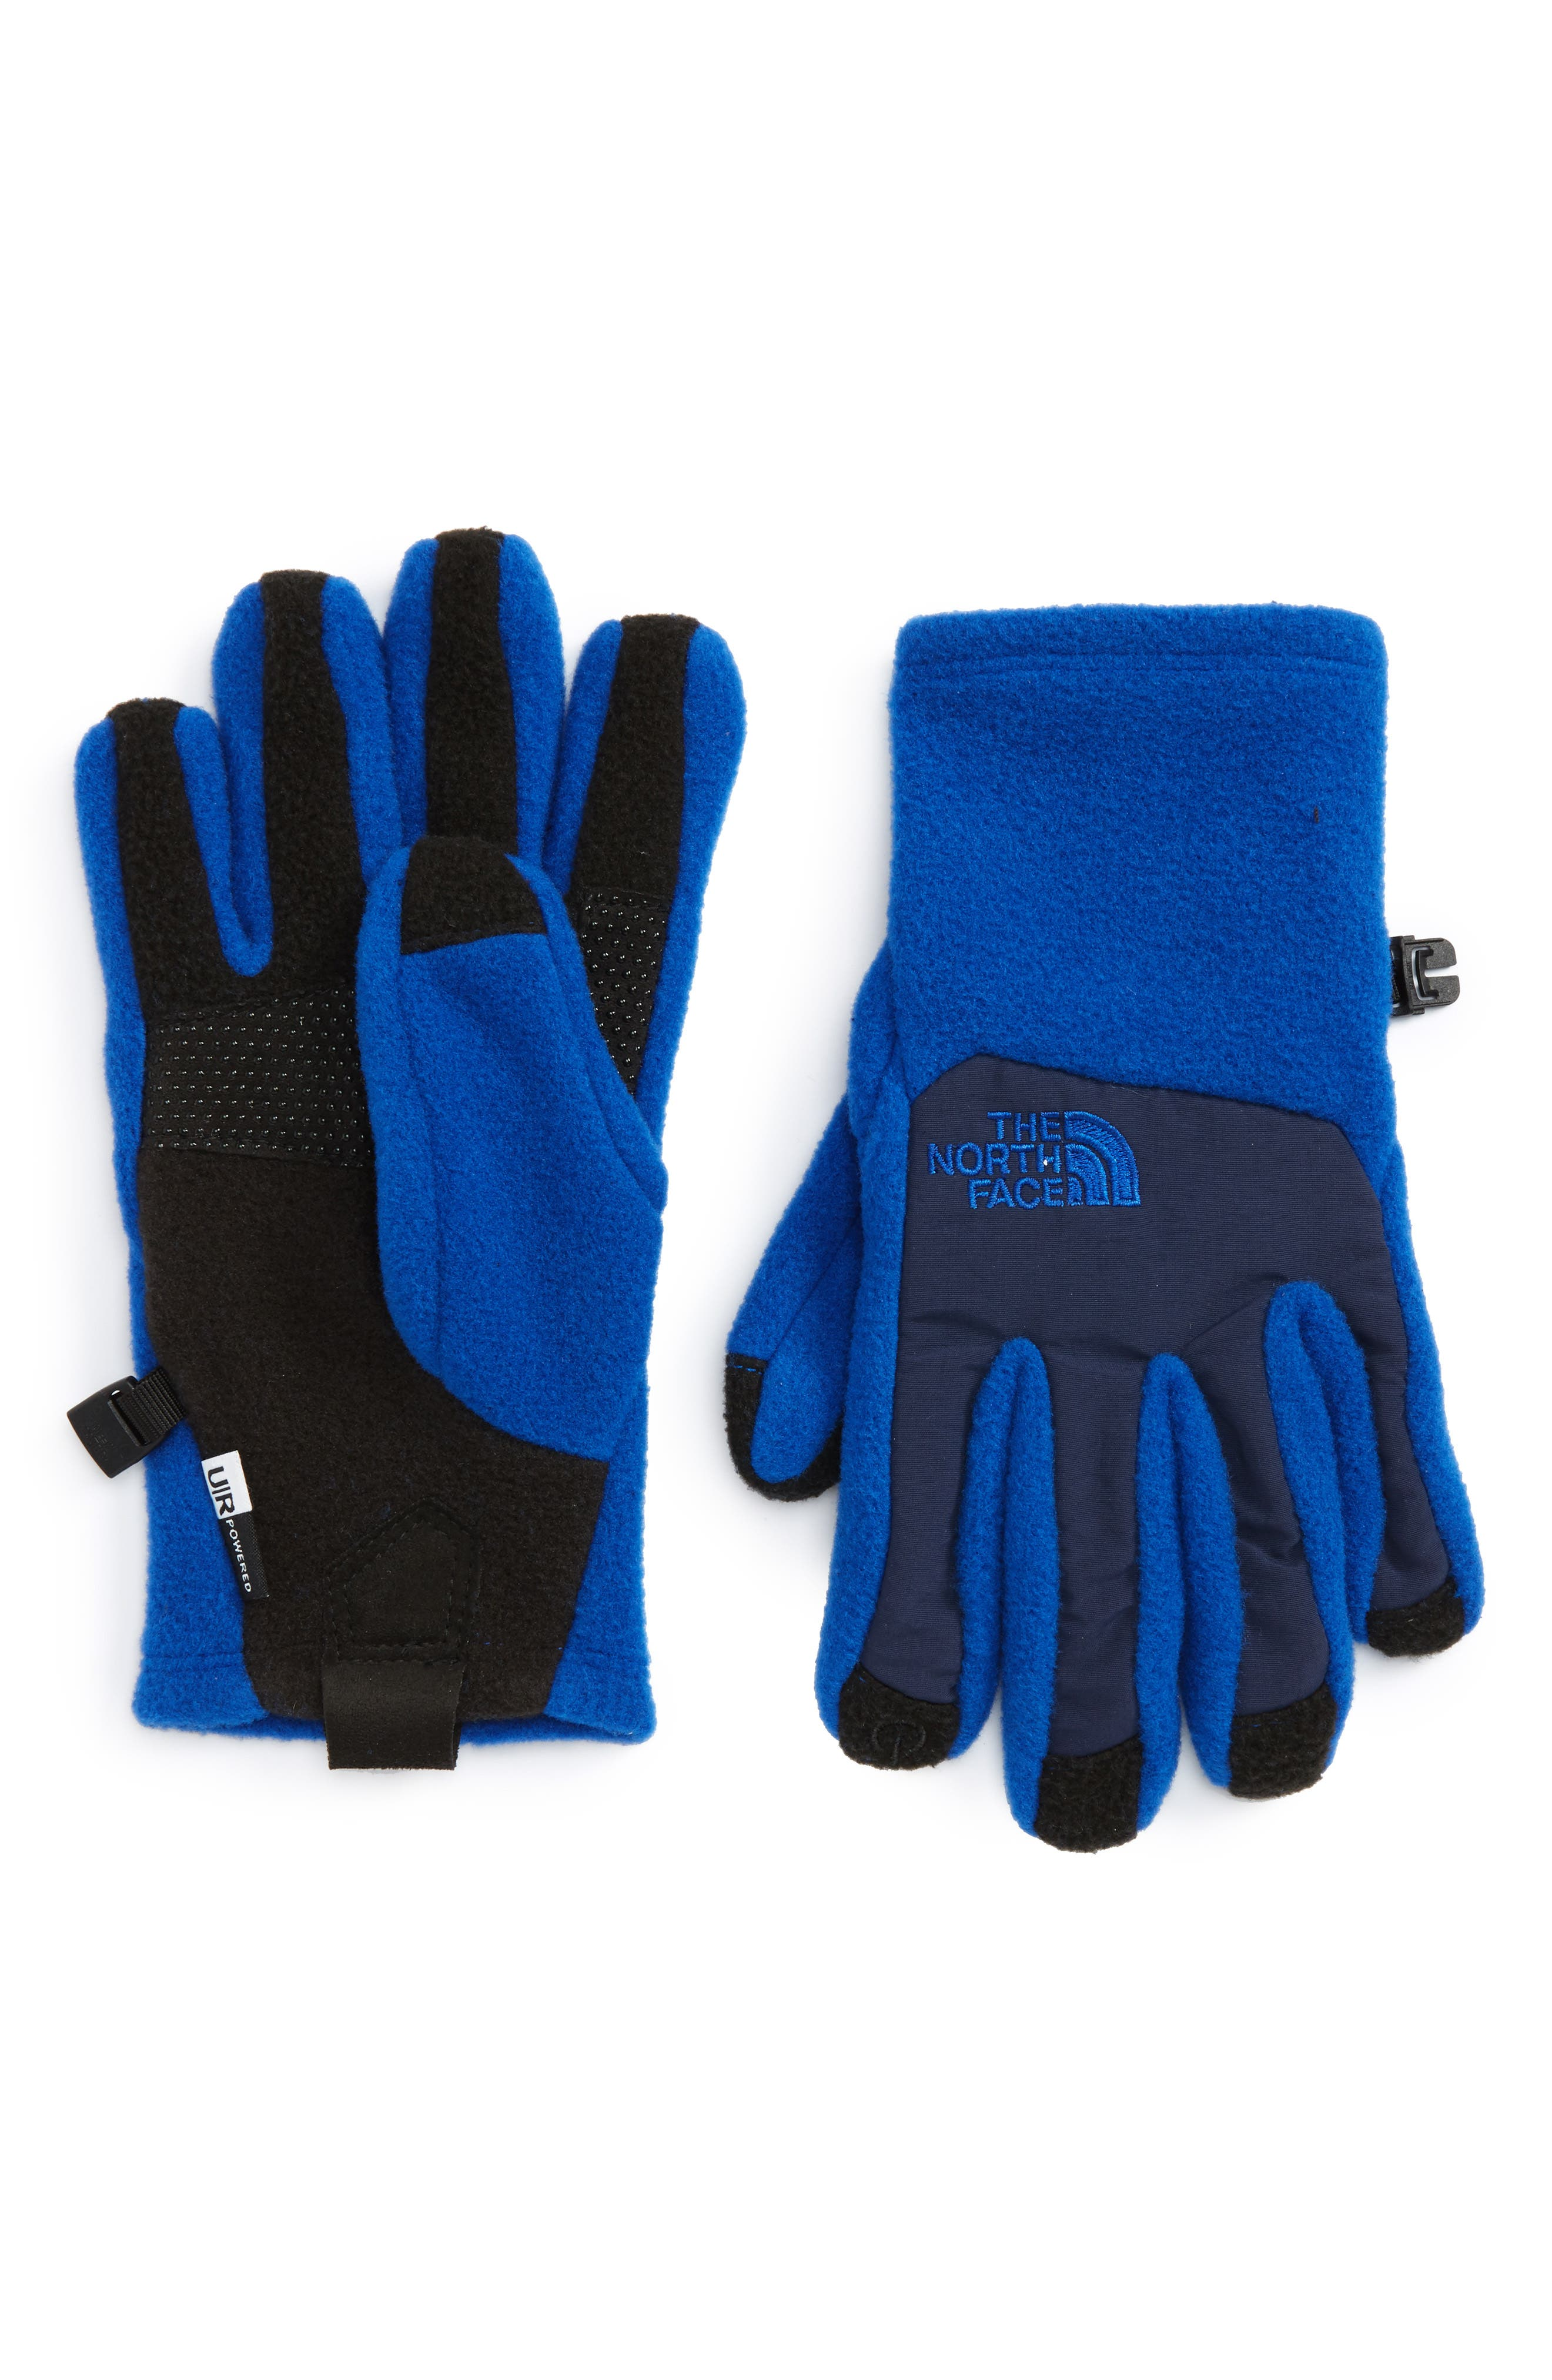 Main Image - The North Face Denali Etip Gloves (Kids)